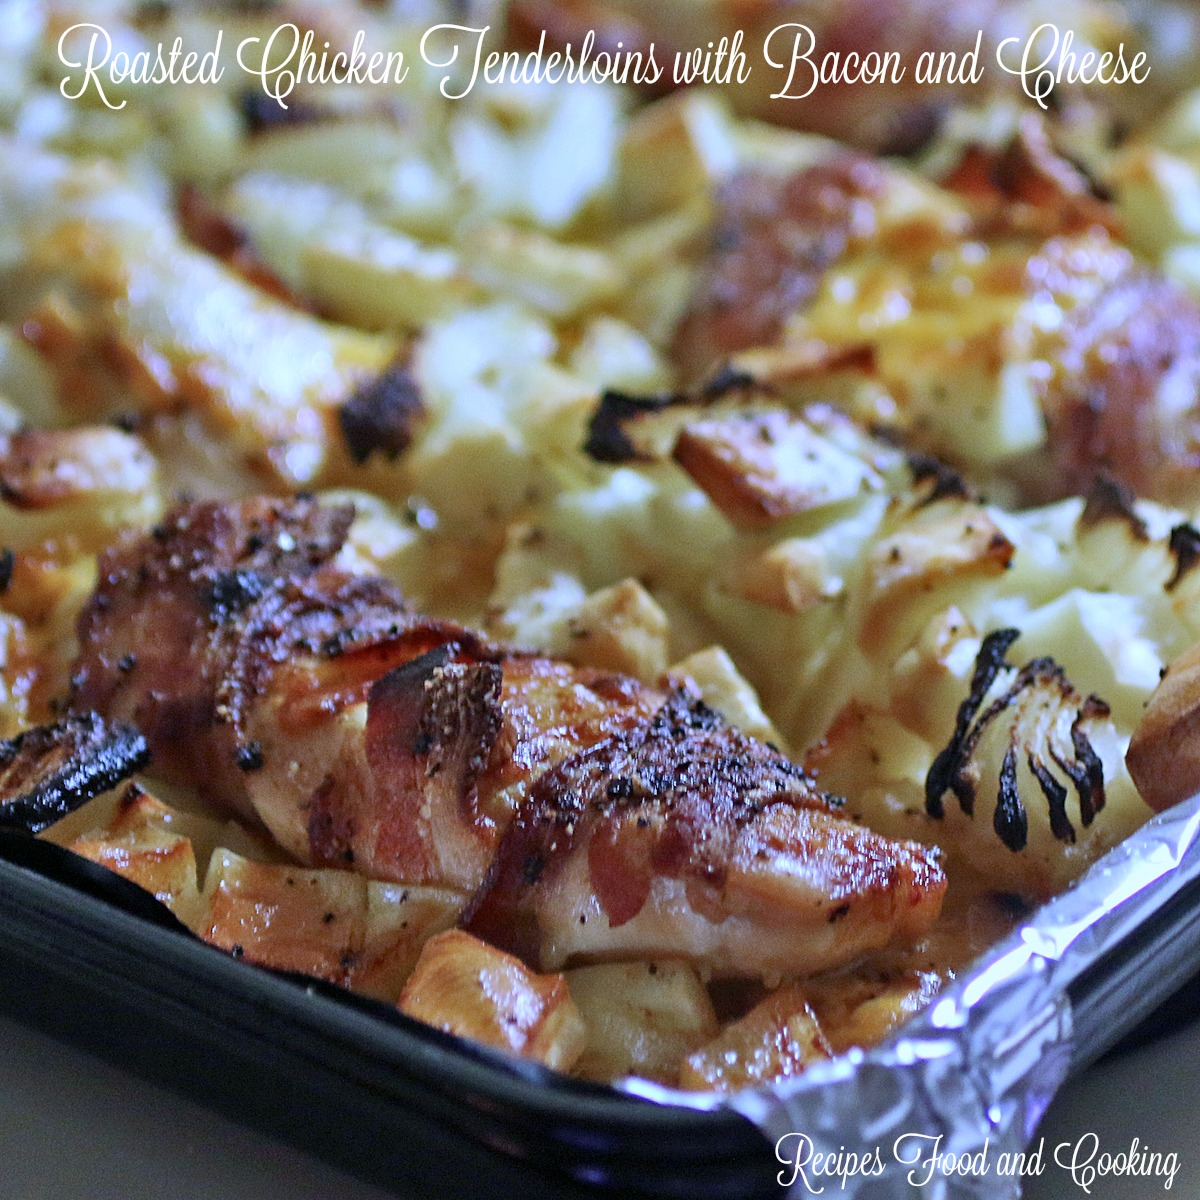 Roasted Chicken Tenderloins with Bacon and Cheese